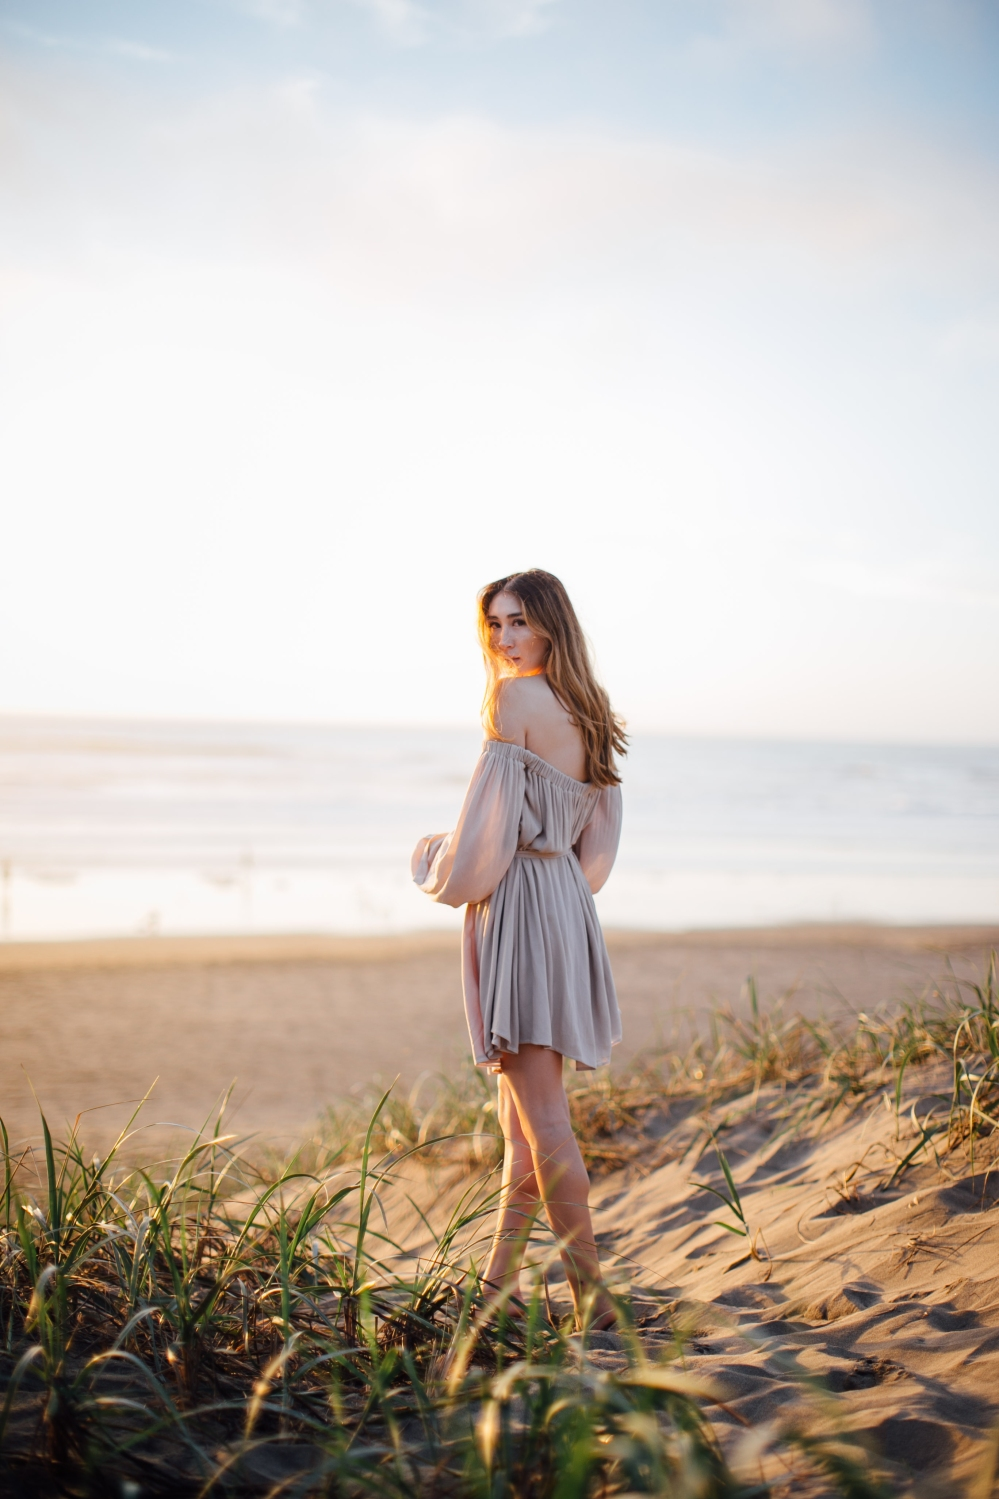 dawning-alyssa-nicole-at-ocean-beach-wearing-the-hannah-dress-2